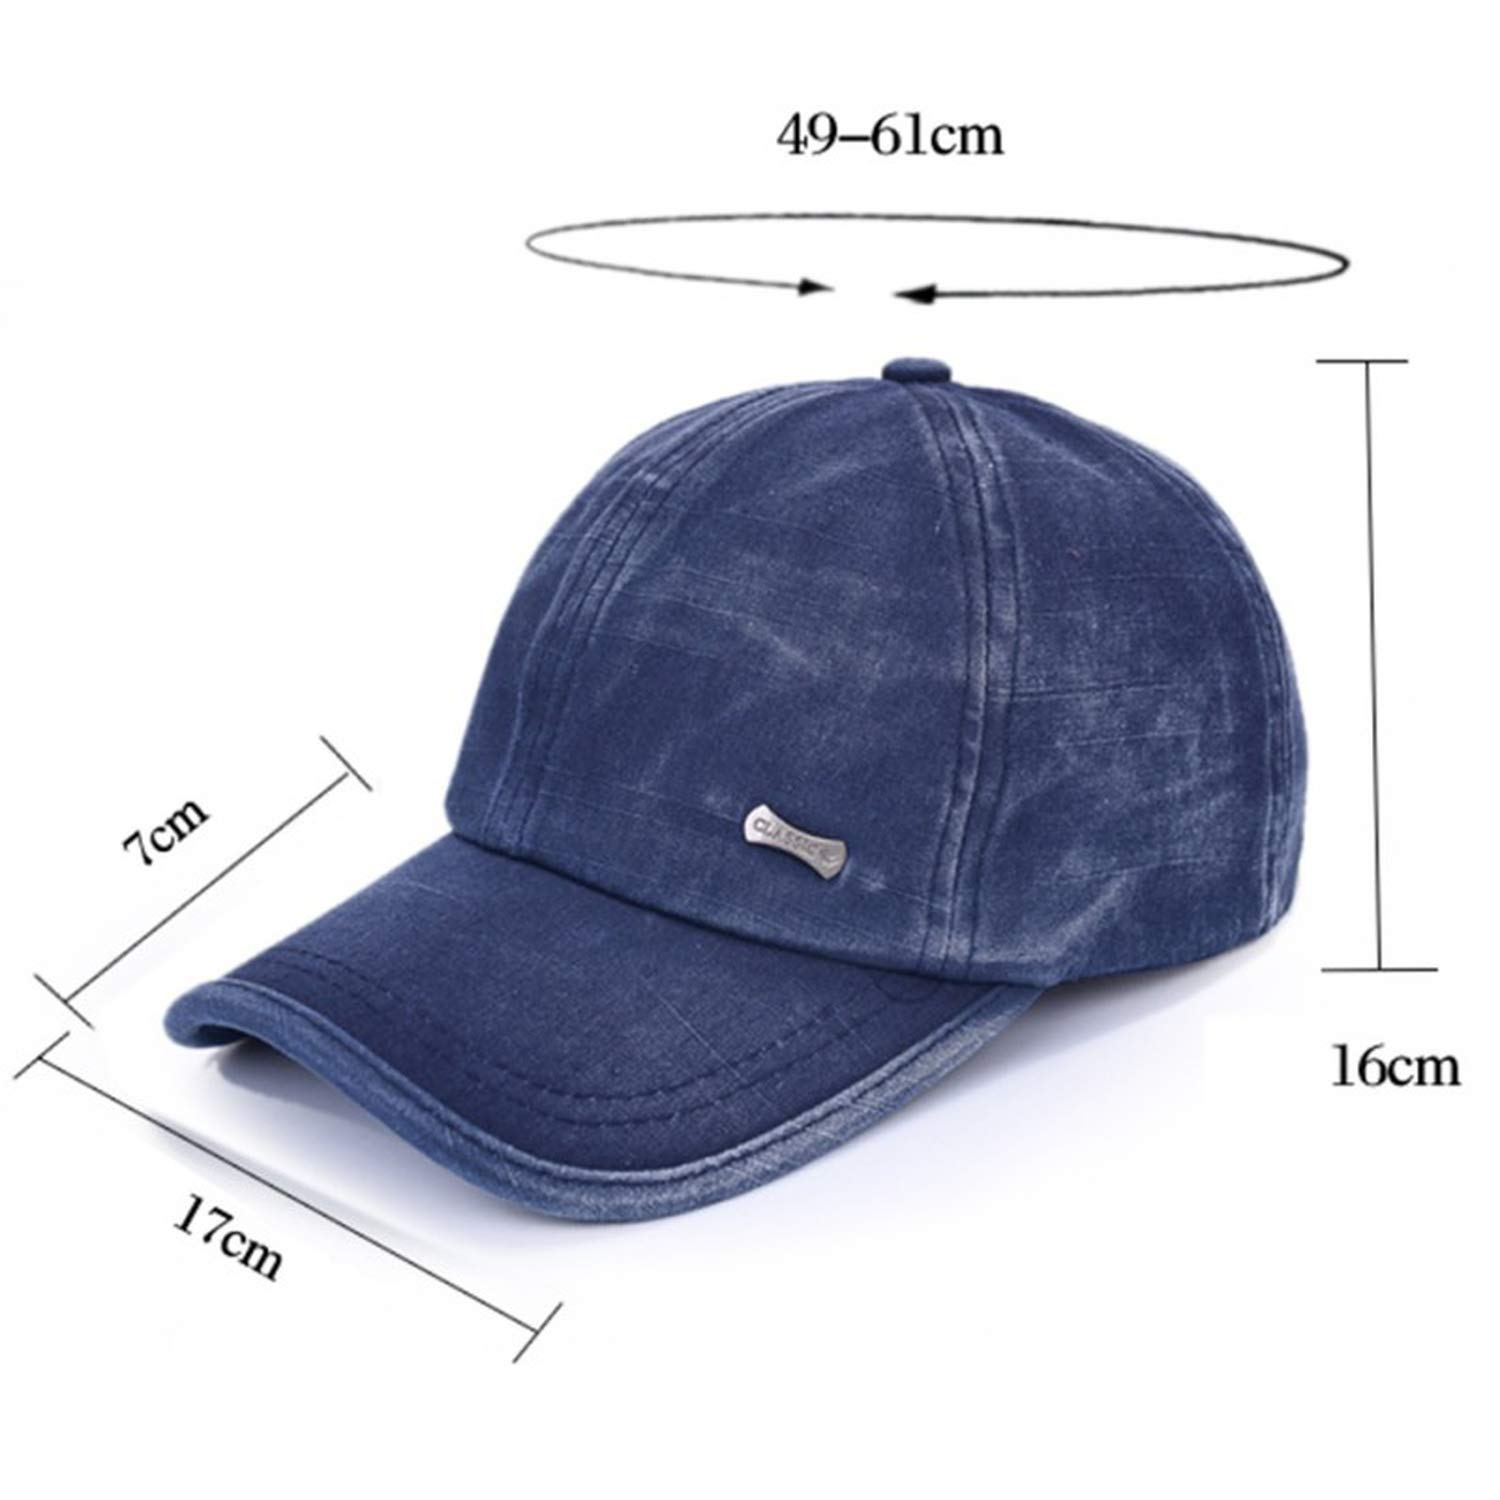 Kievil Summer Sunhat Hat Adjustable Washed Male Baseball Cap Mens Casual Cap Womens Hats Unisex Caps